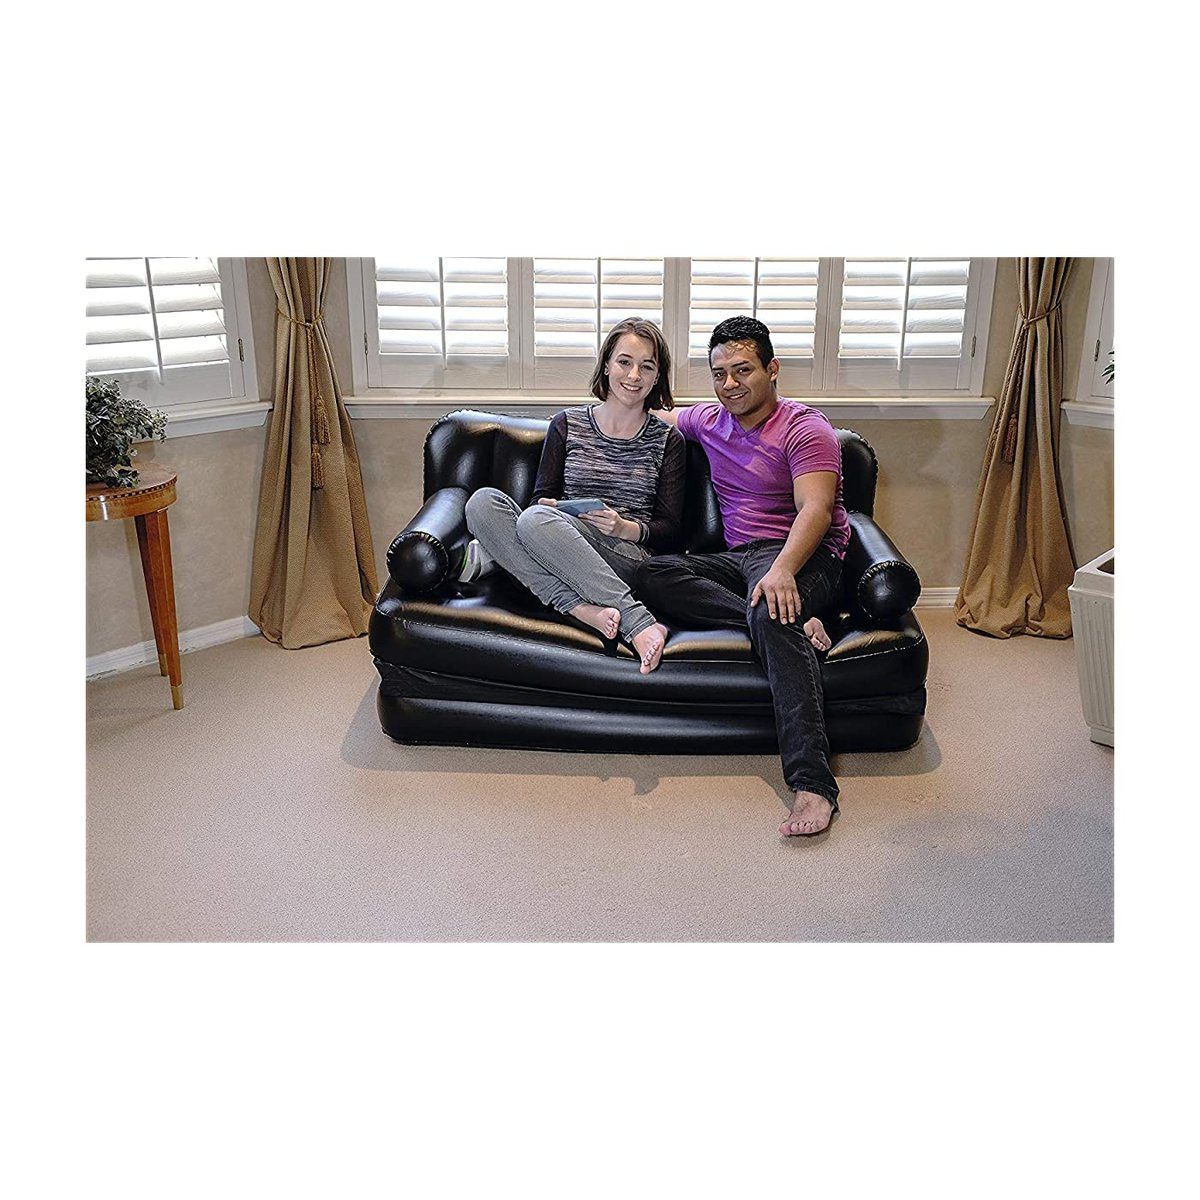 #InflatableBedsPillowsAccessoriesDeal #HomeFurnishingDeal   See amazing 'Sisliya 5 in 1 Inflatable Sofa Air Bed Couch with Electric Pump(Air sofa bed)' for just ₹2499!!!  Buy here: